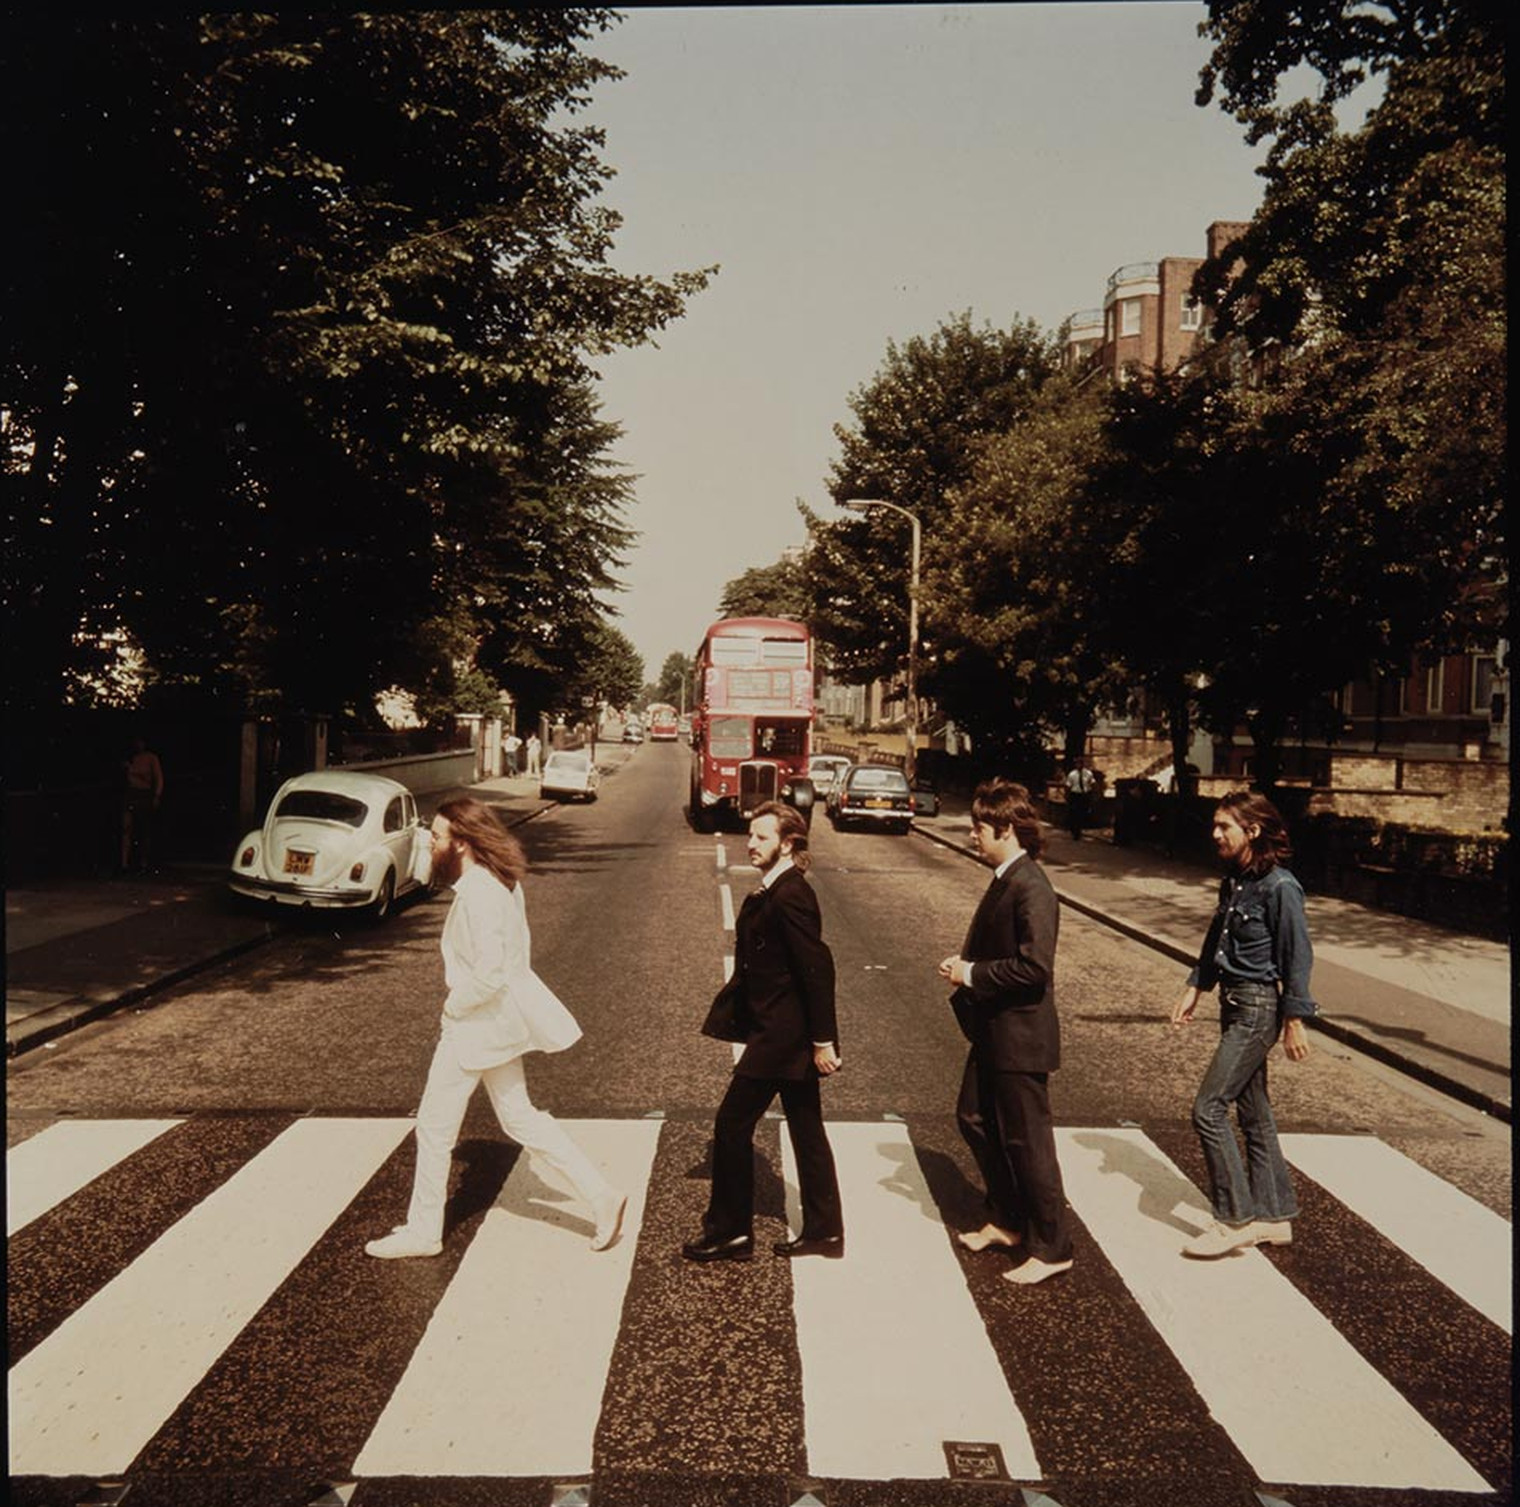 The Beatles Abbey Road Unused Alternate Cover Photos